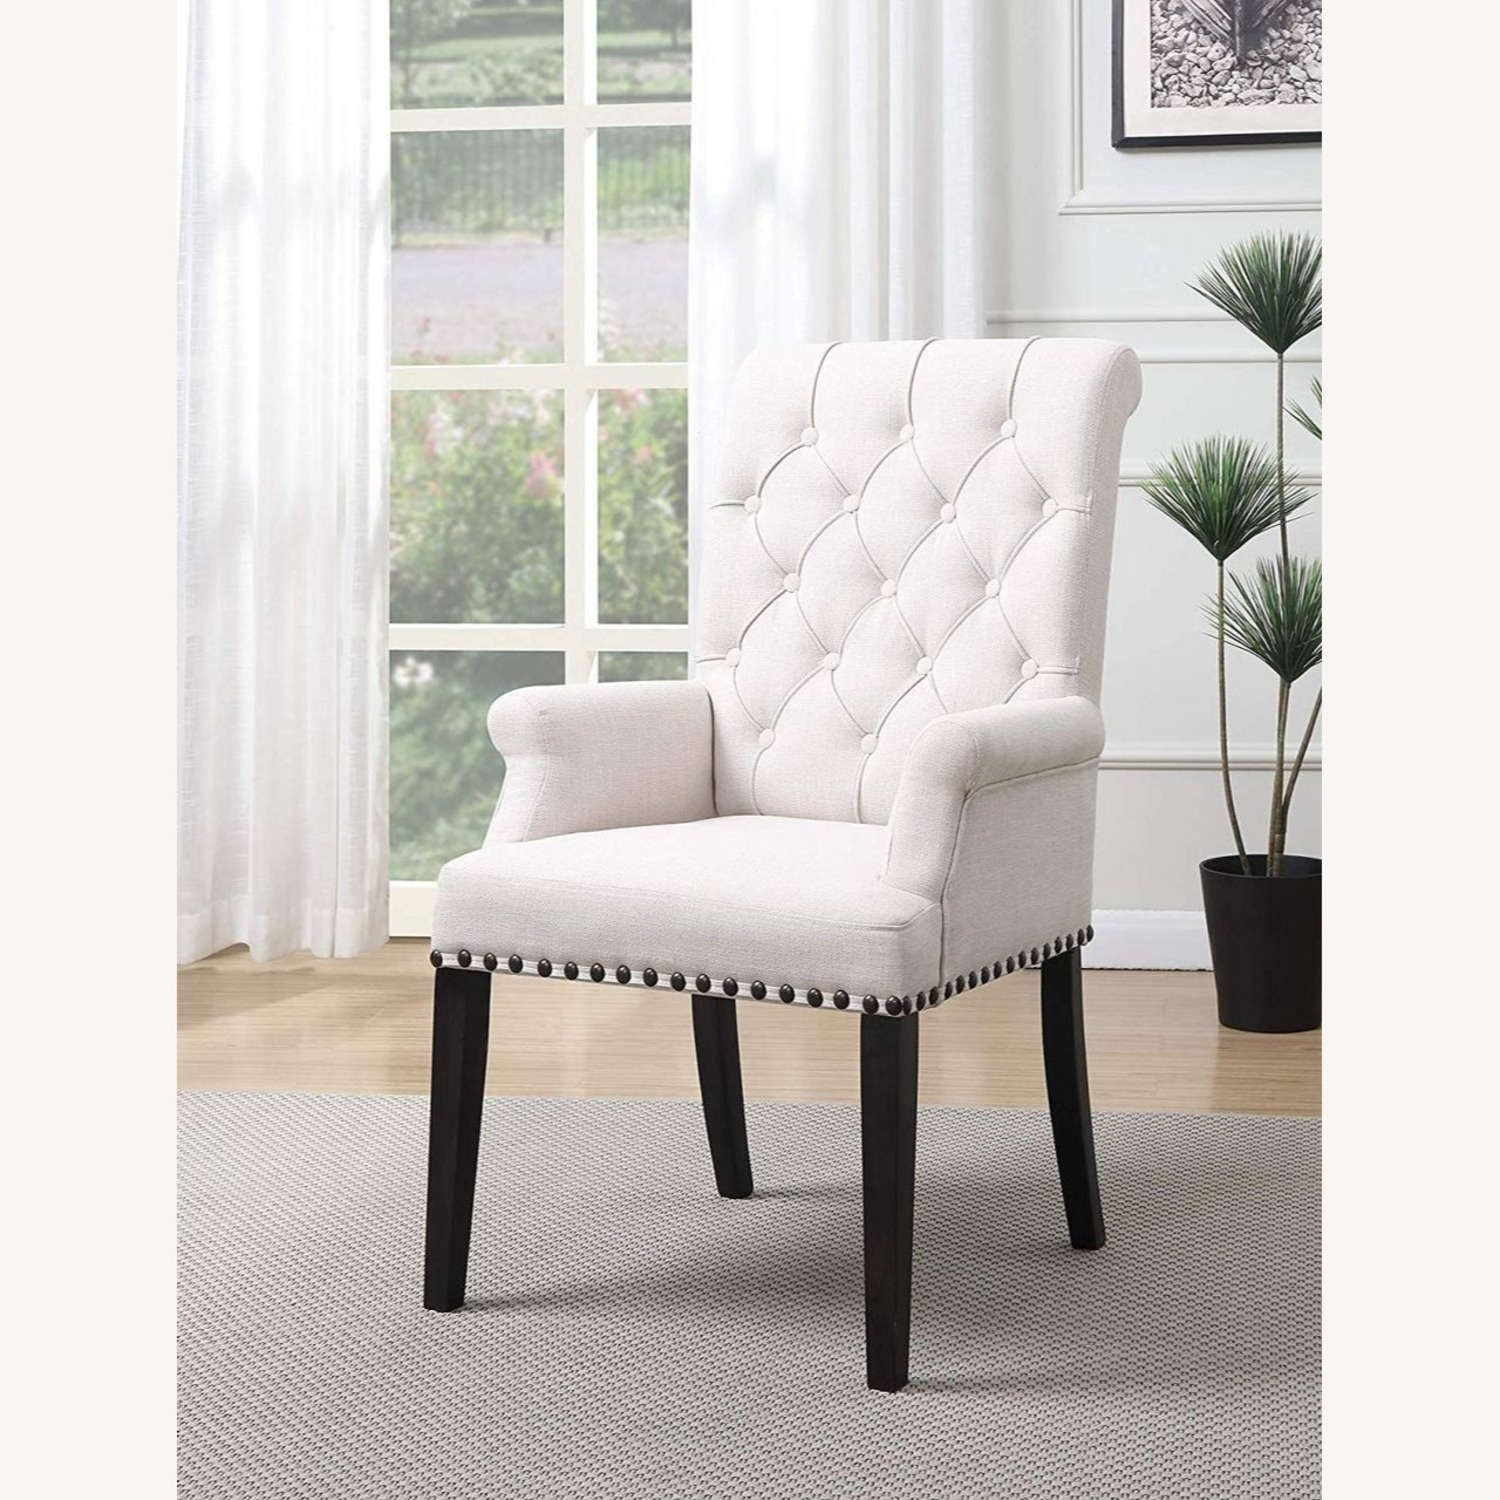 Modern Arm Chair In Beige Fabric - image-3